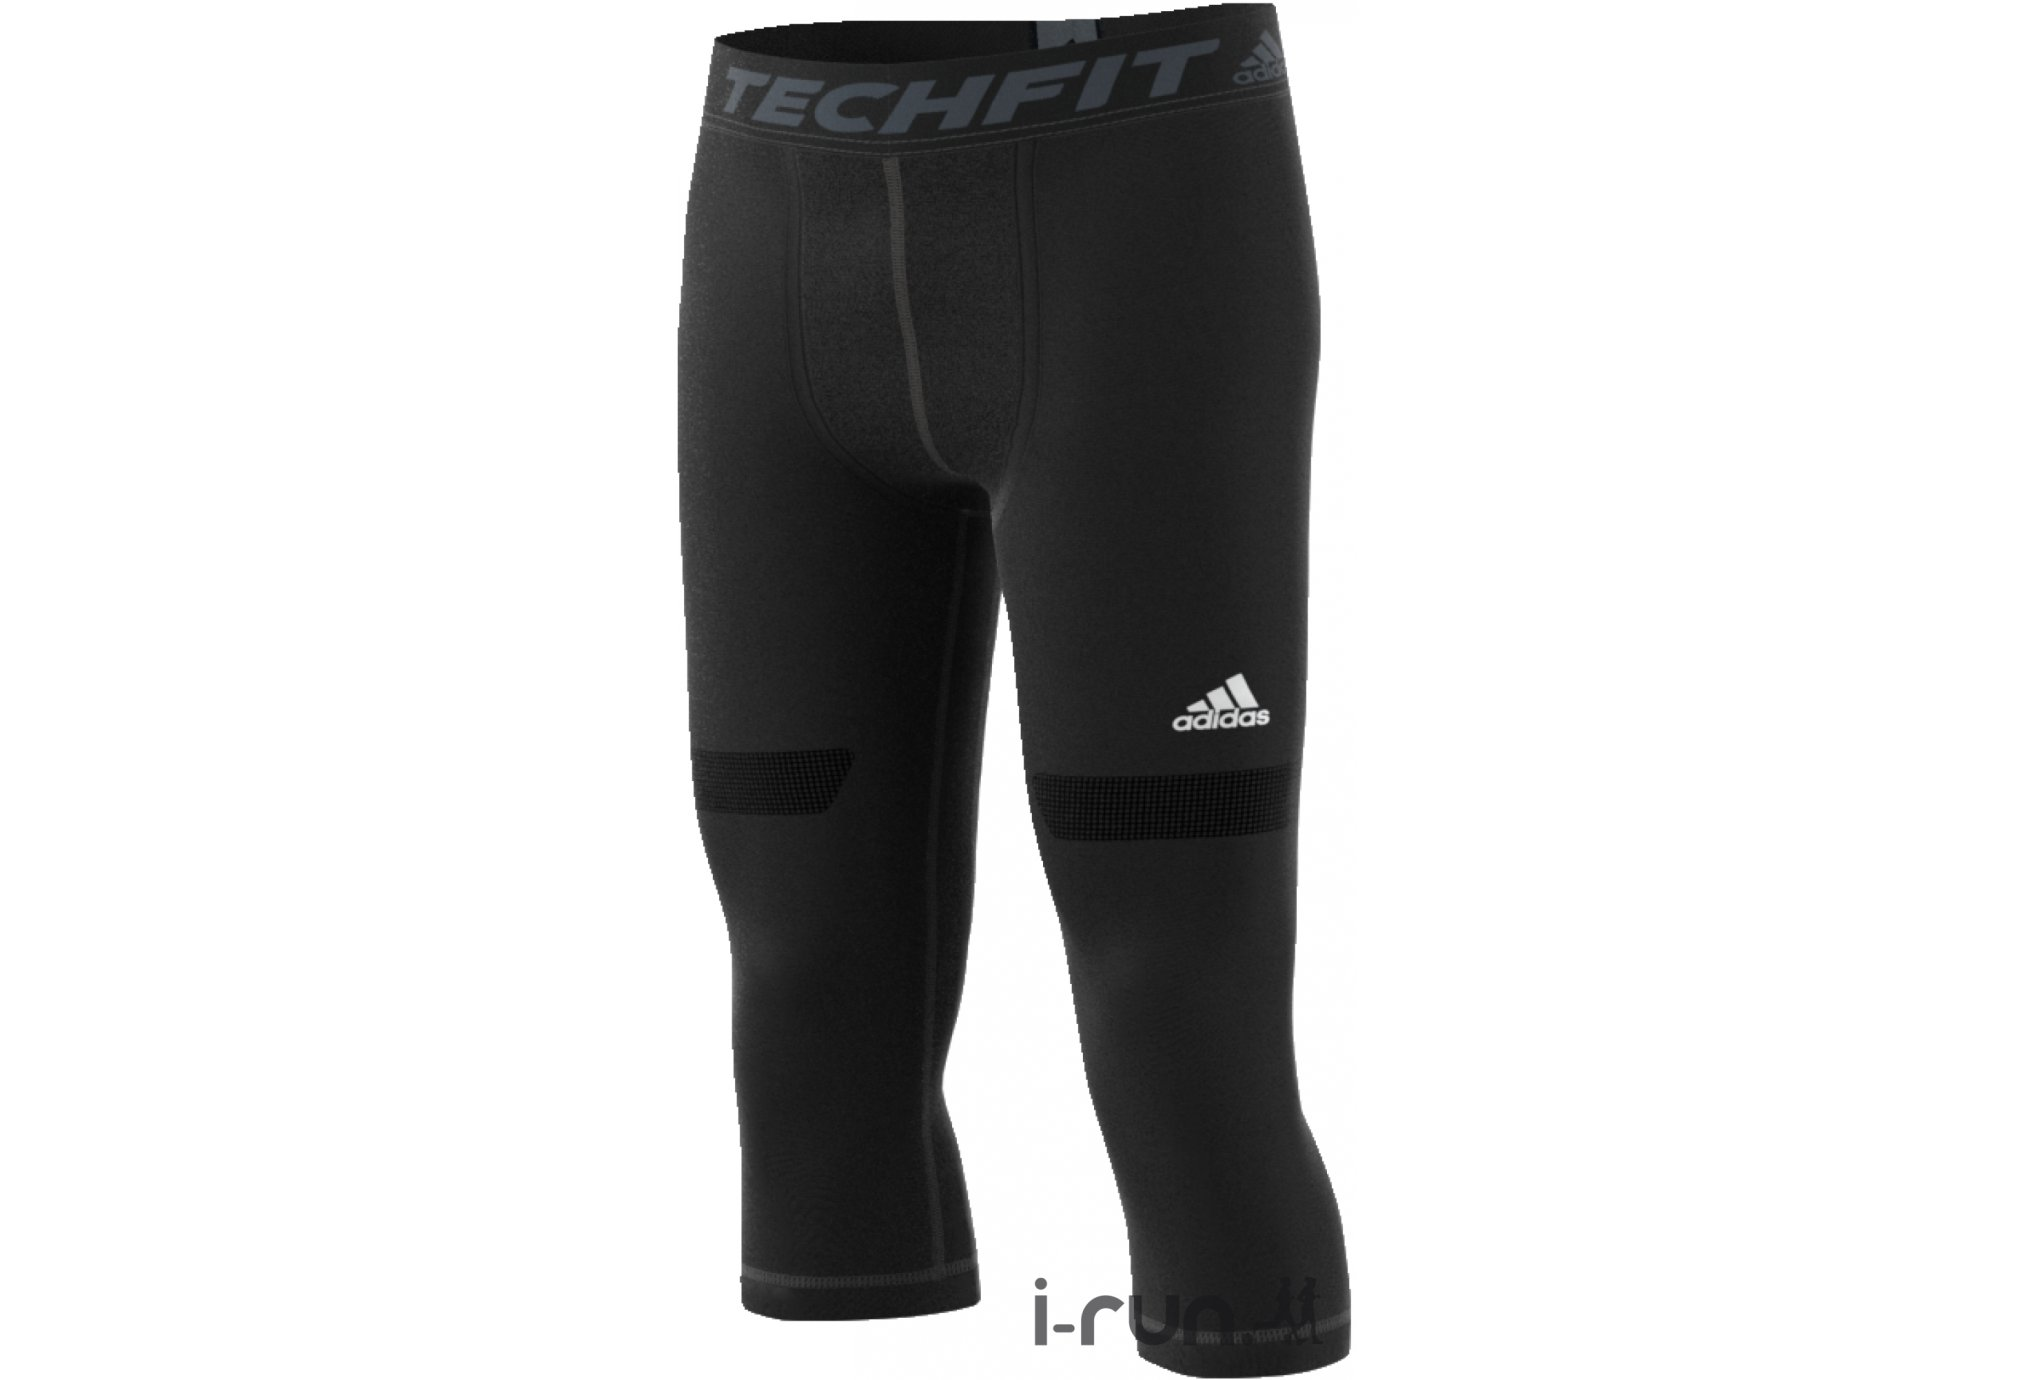 Adidas Collant 3/4 techfit chill m vêtement running homme